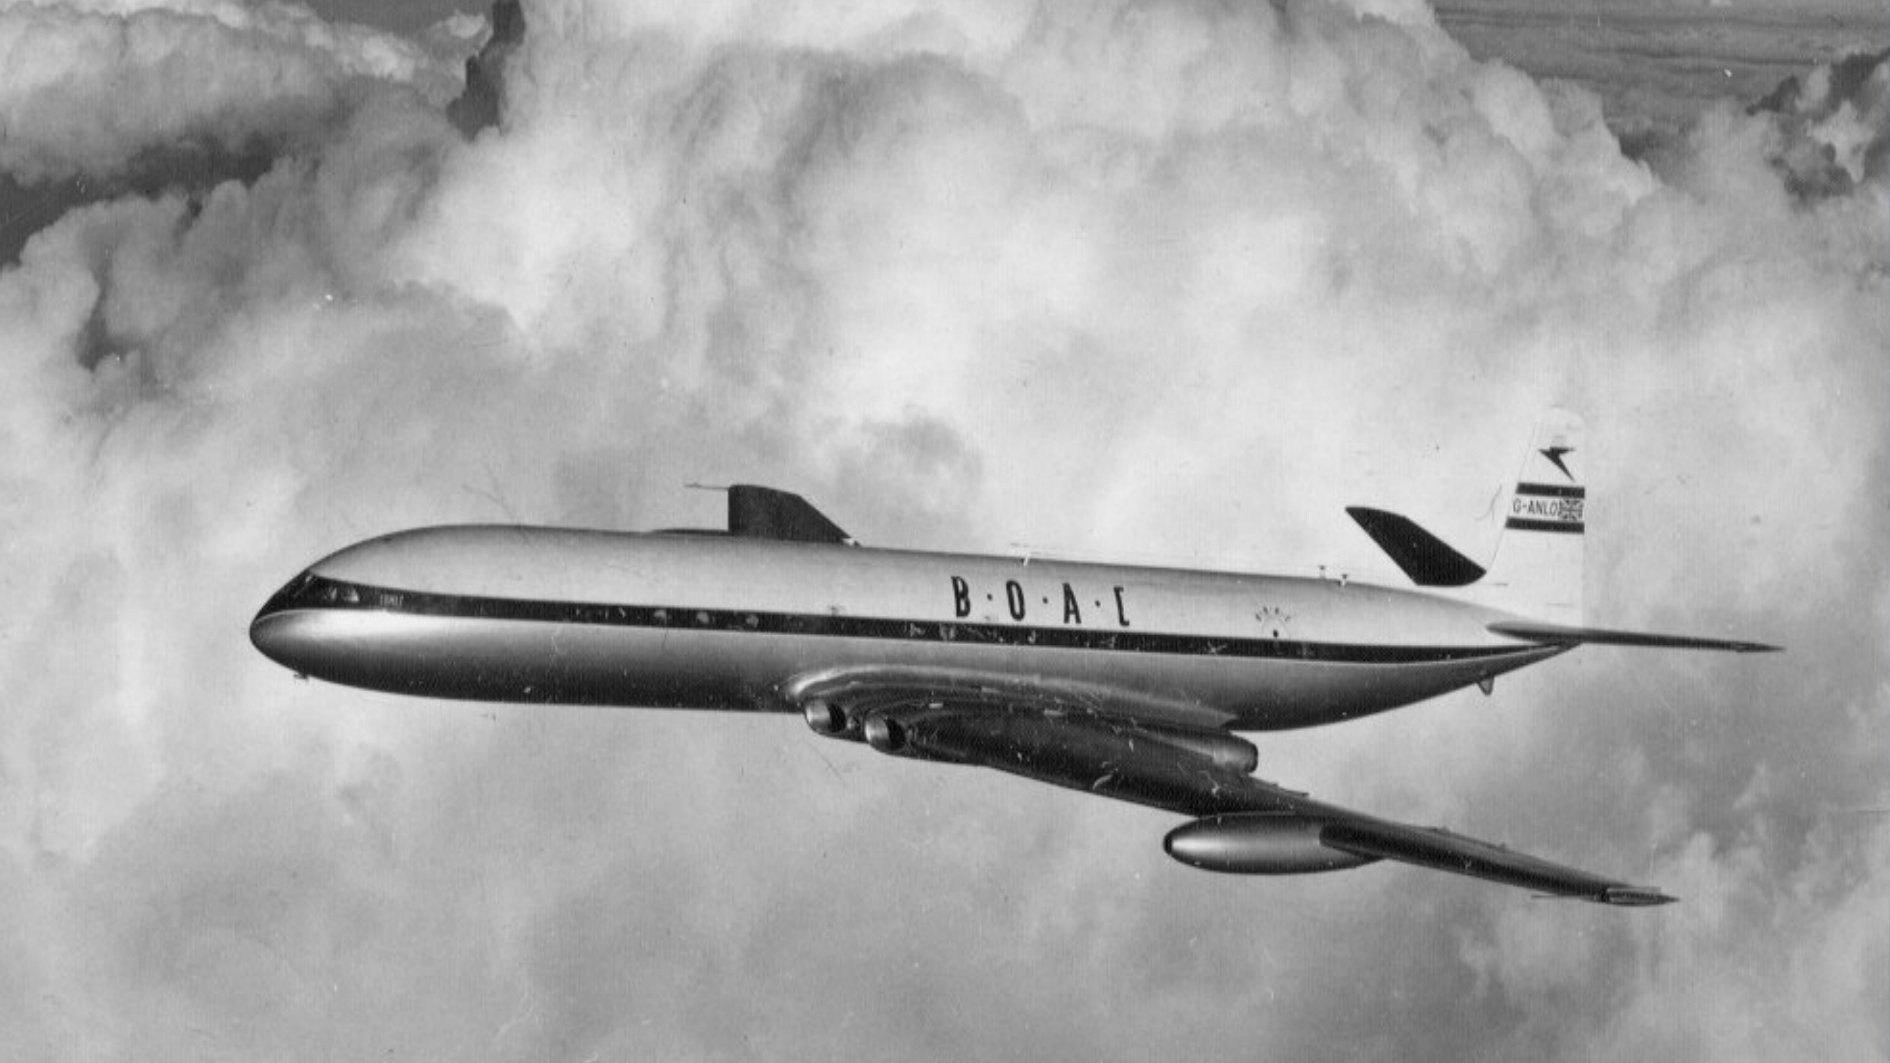 Aviation 4 0: The Age of Democratized Aerial Mobility